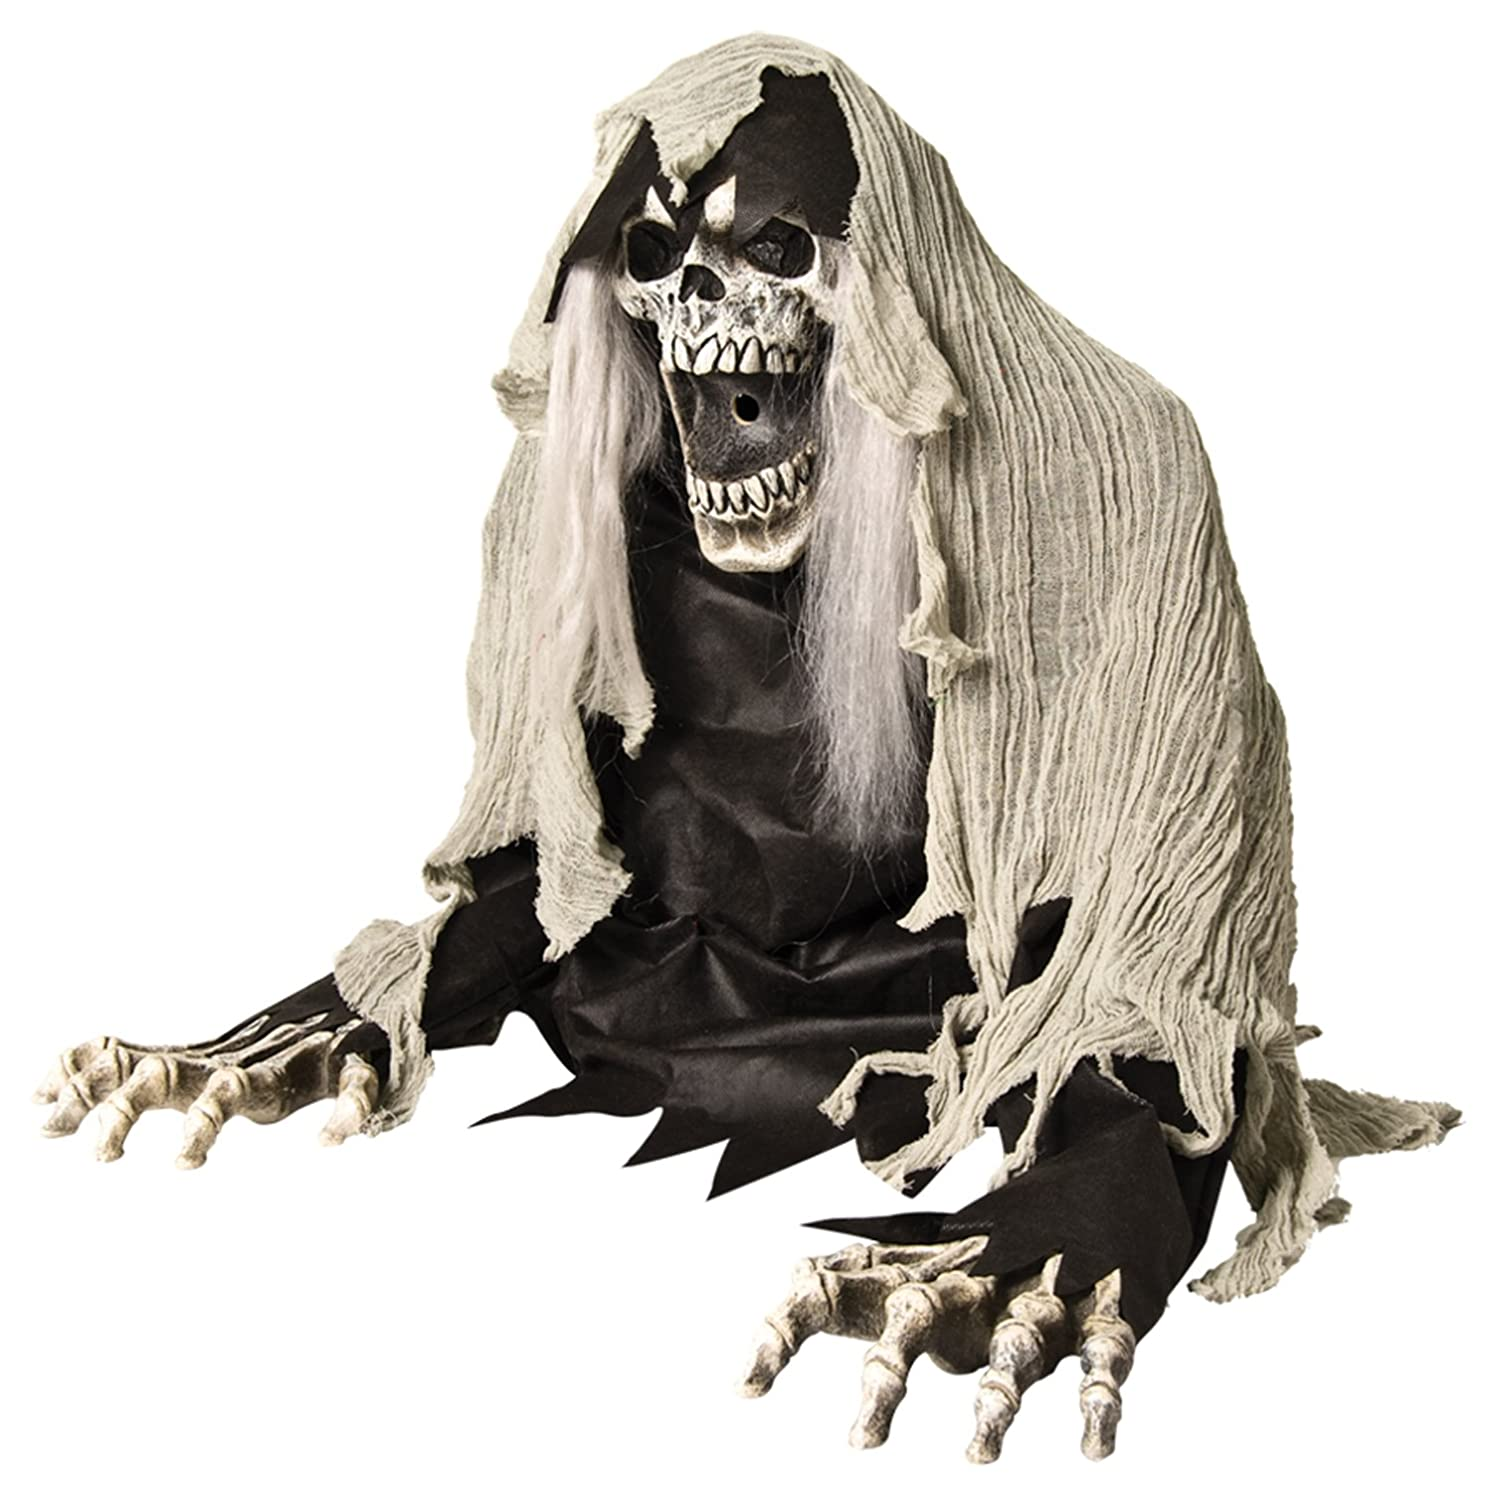 Life-Size Wretched Reaper ANIMATED ZOMBIE GHOUL Fog Machine Accessory Haunt Prop HORROR-HALL